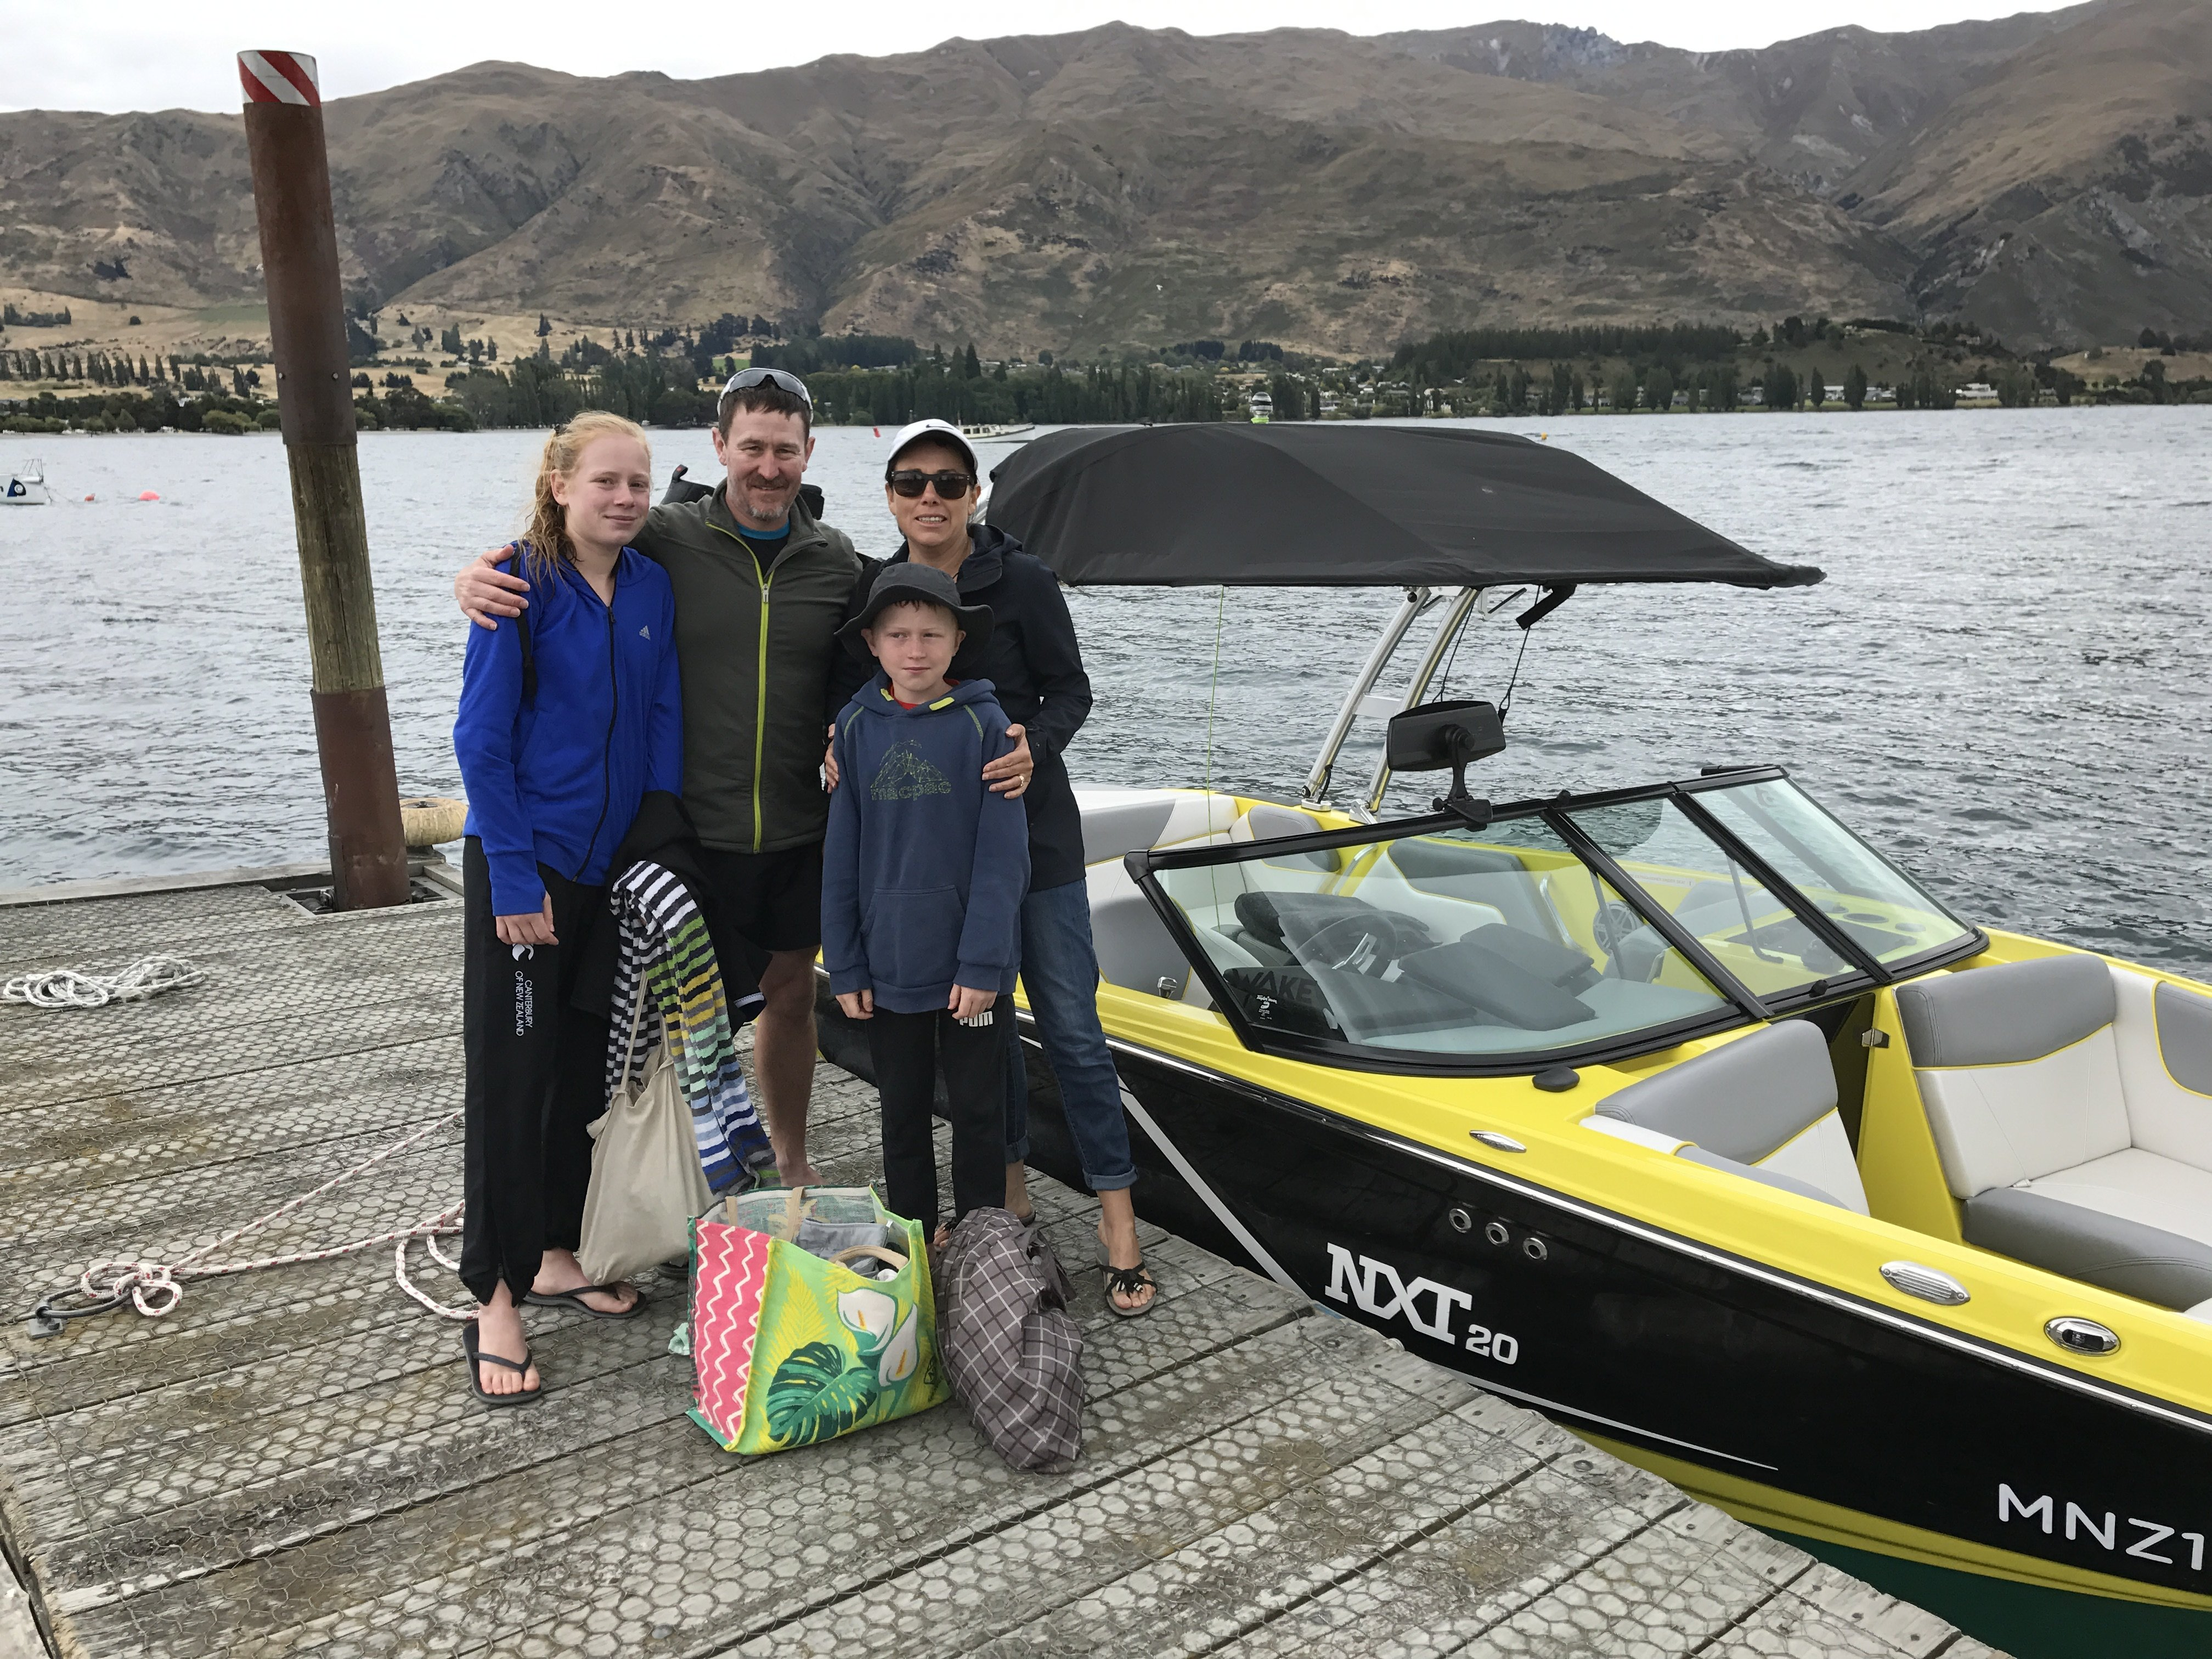 Family boating adventures on Lake Wanaka